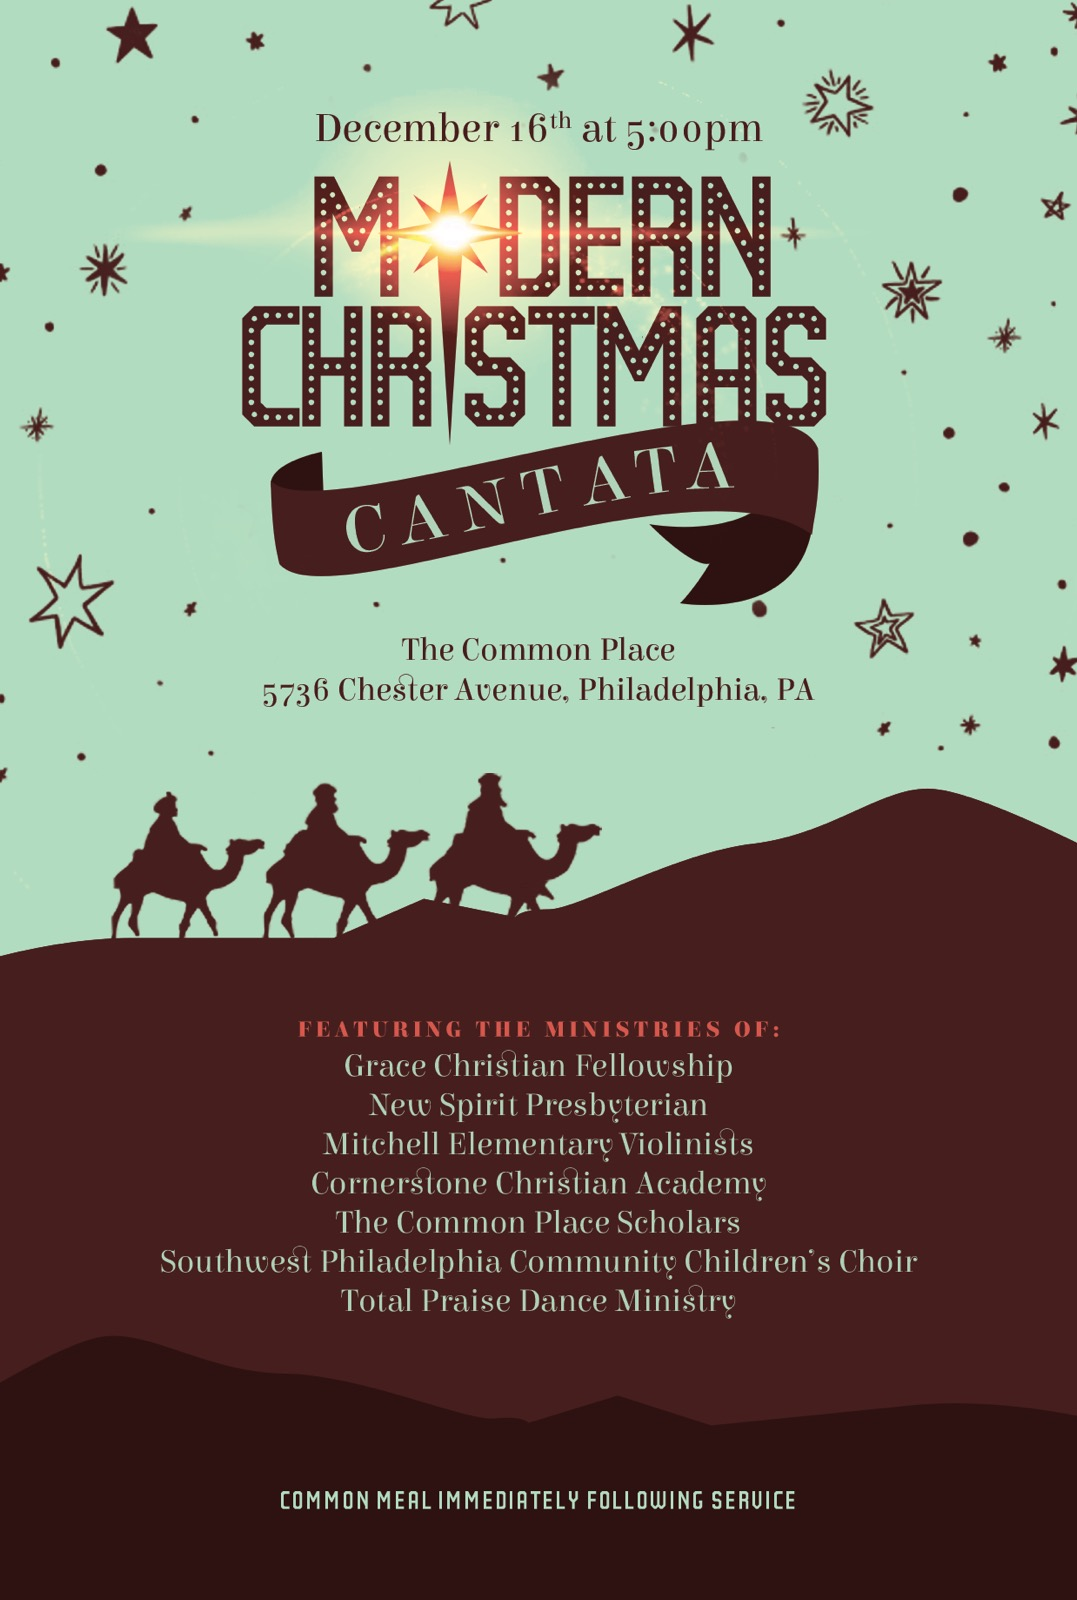 New Christmas Cantatas 2020 The Common Place Christmas Cantata – 2020